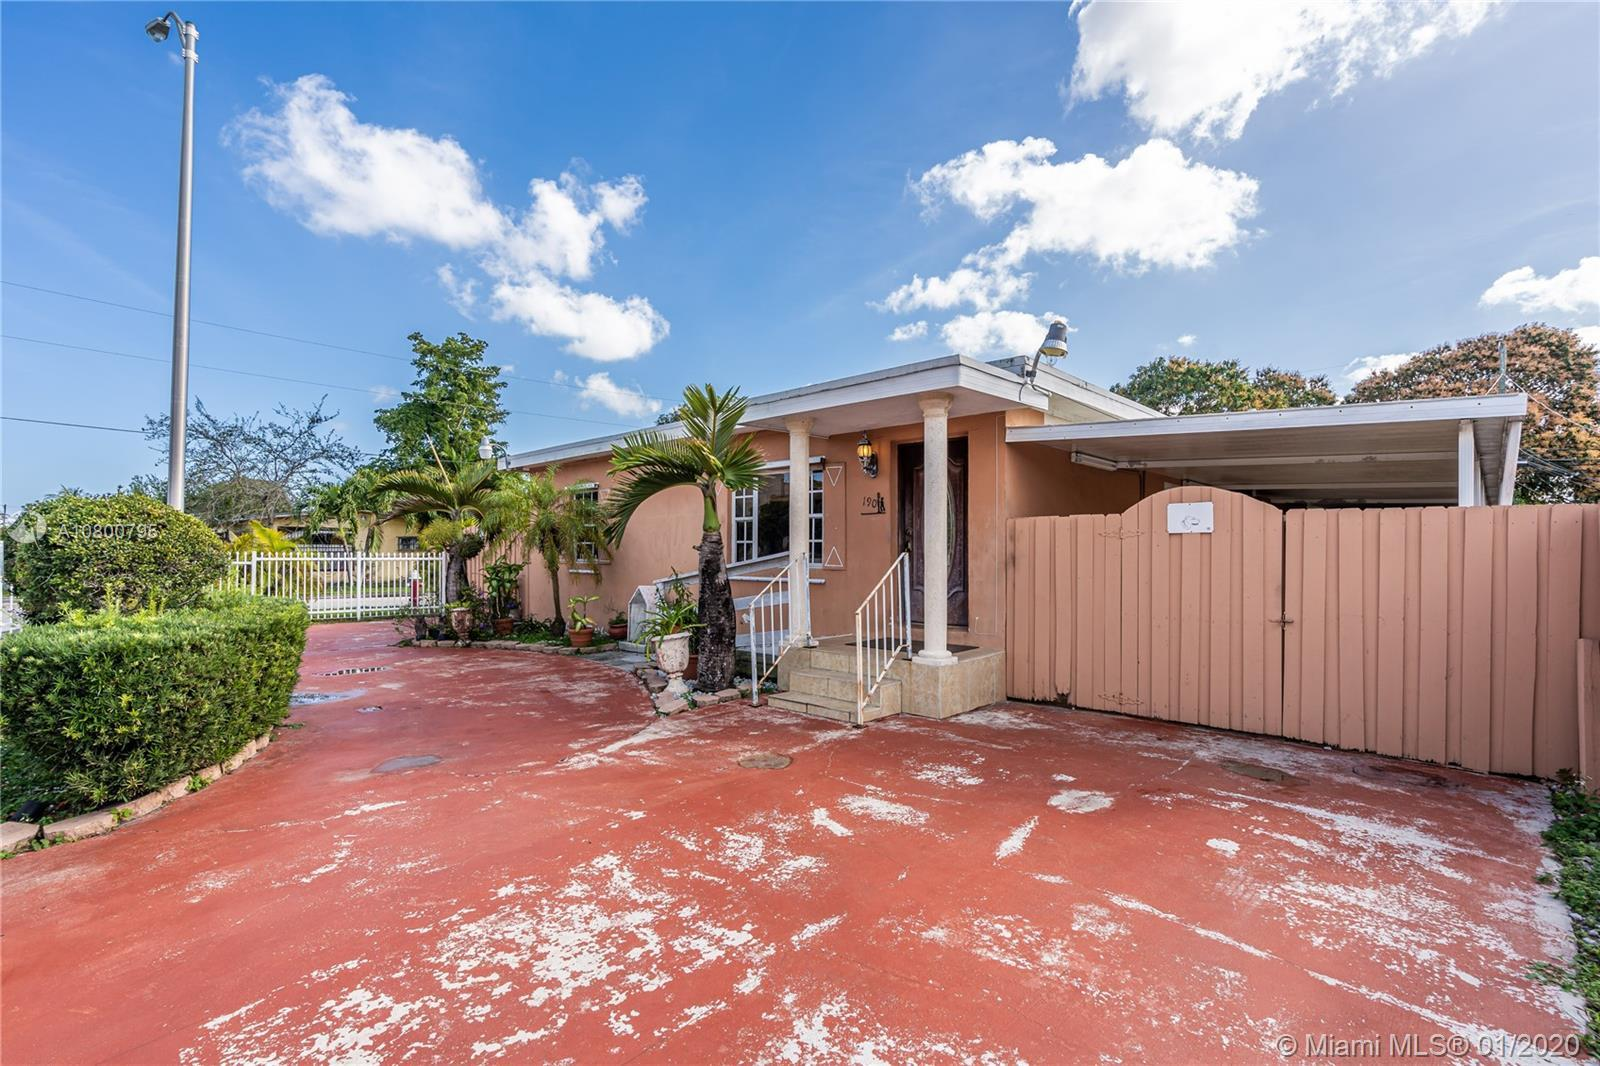 Beautiful single family corner lot home in the Hialeah neighborhood. Right in front of Hialeah High